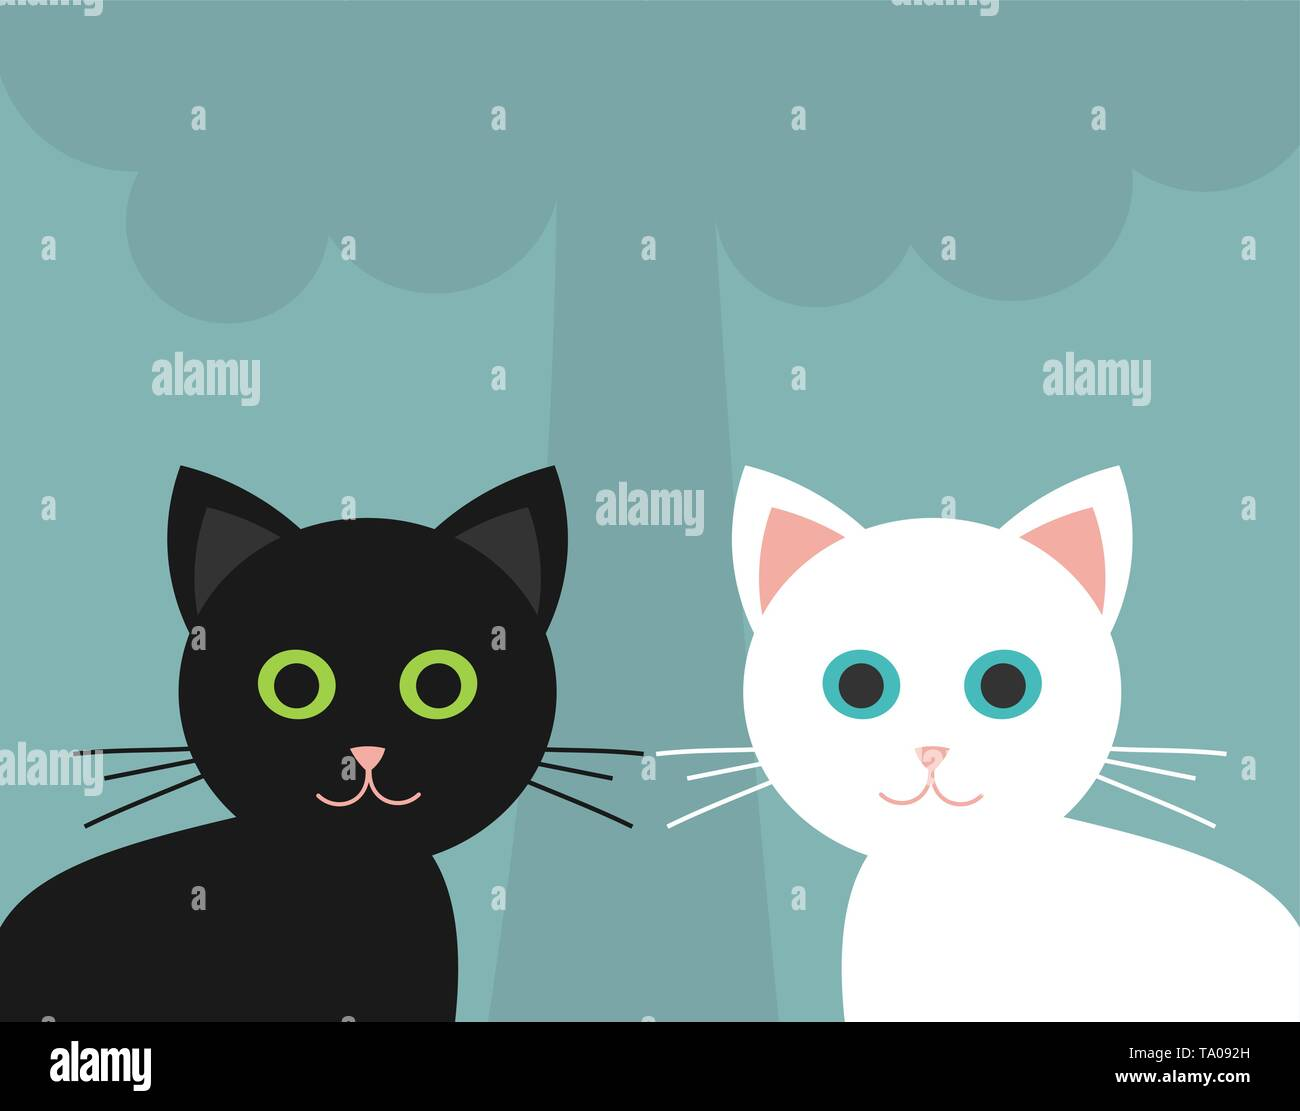 Two cute kittens, black and white. Vector illustration - Stock Image